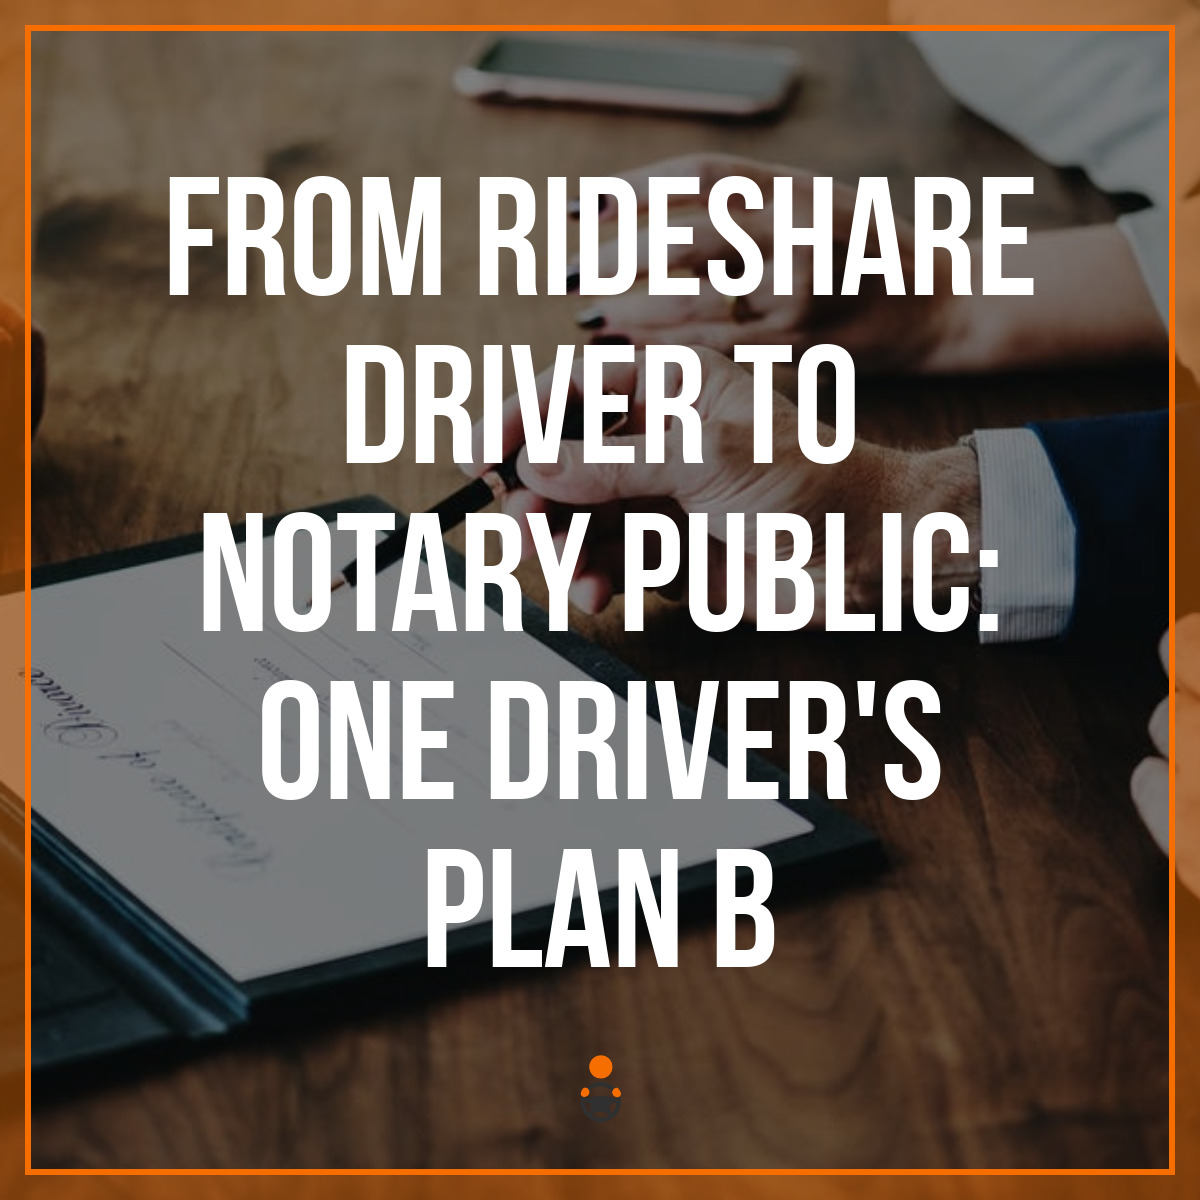 From Rideshare Driver to Notary Public: One Driver's Plan B